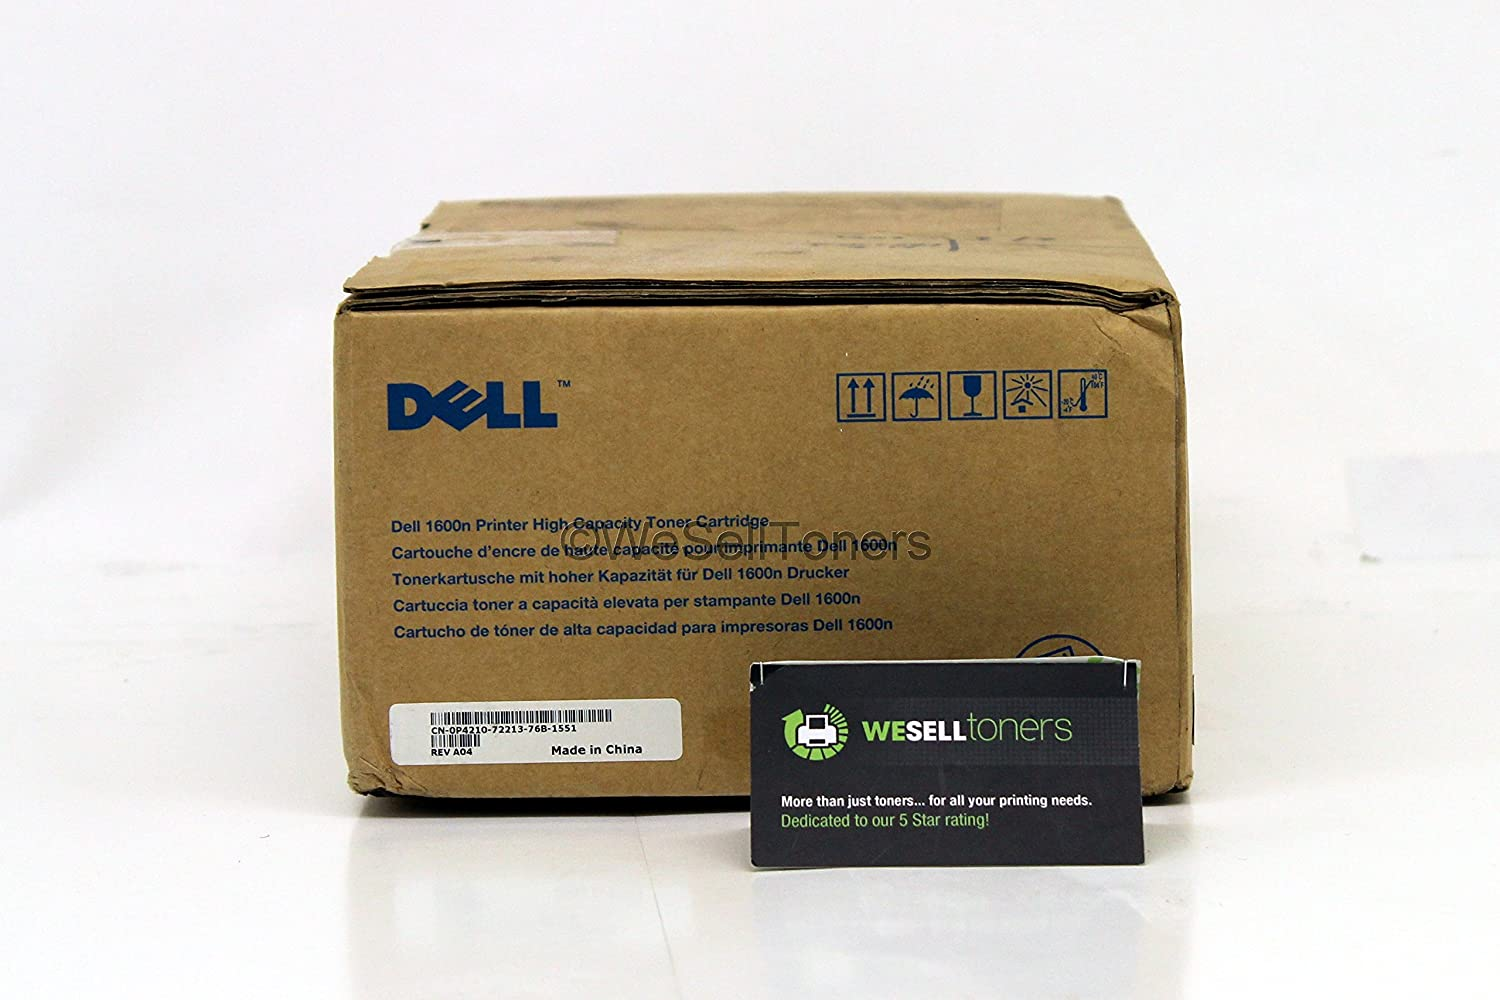 dell printer accessories p4210 dell 1600n 5k black toner cartridge 310-5417